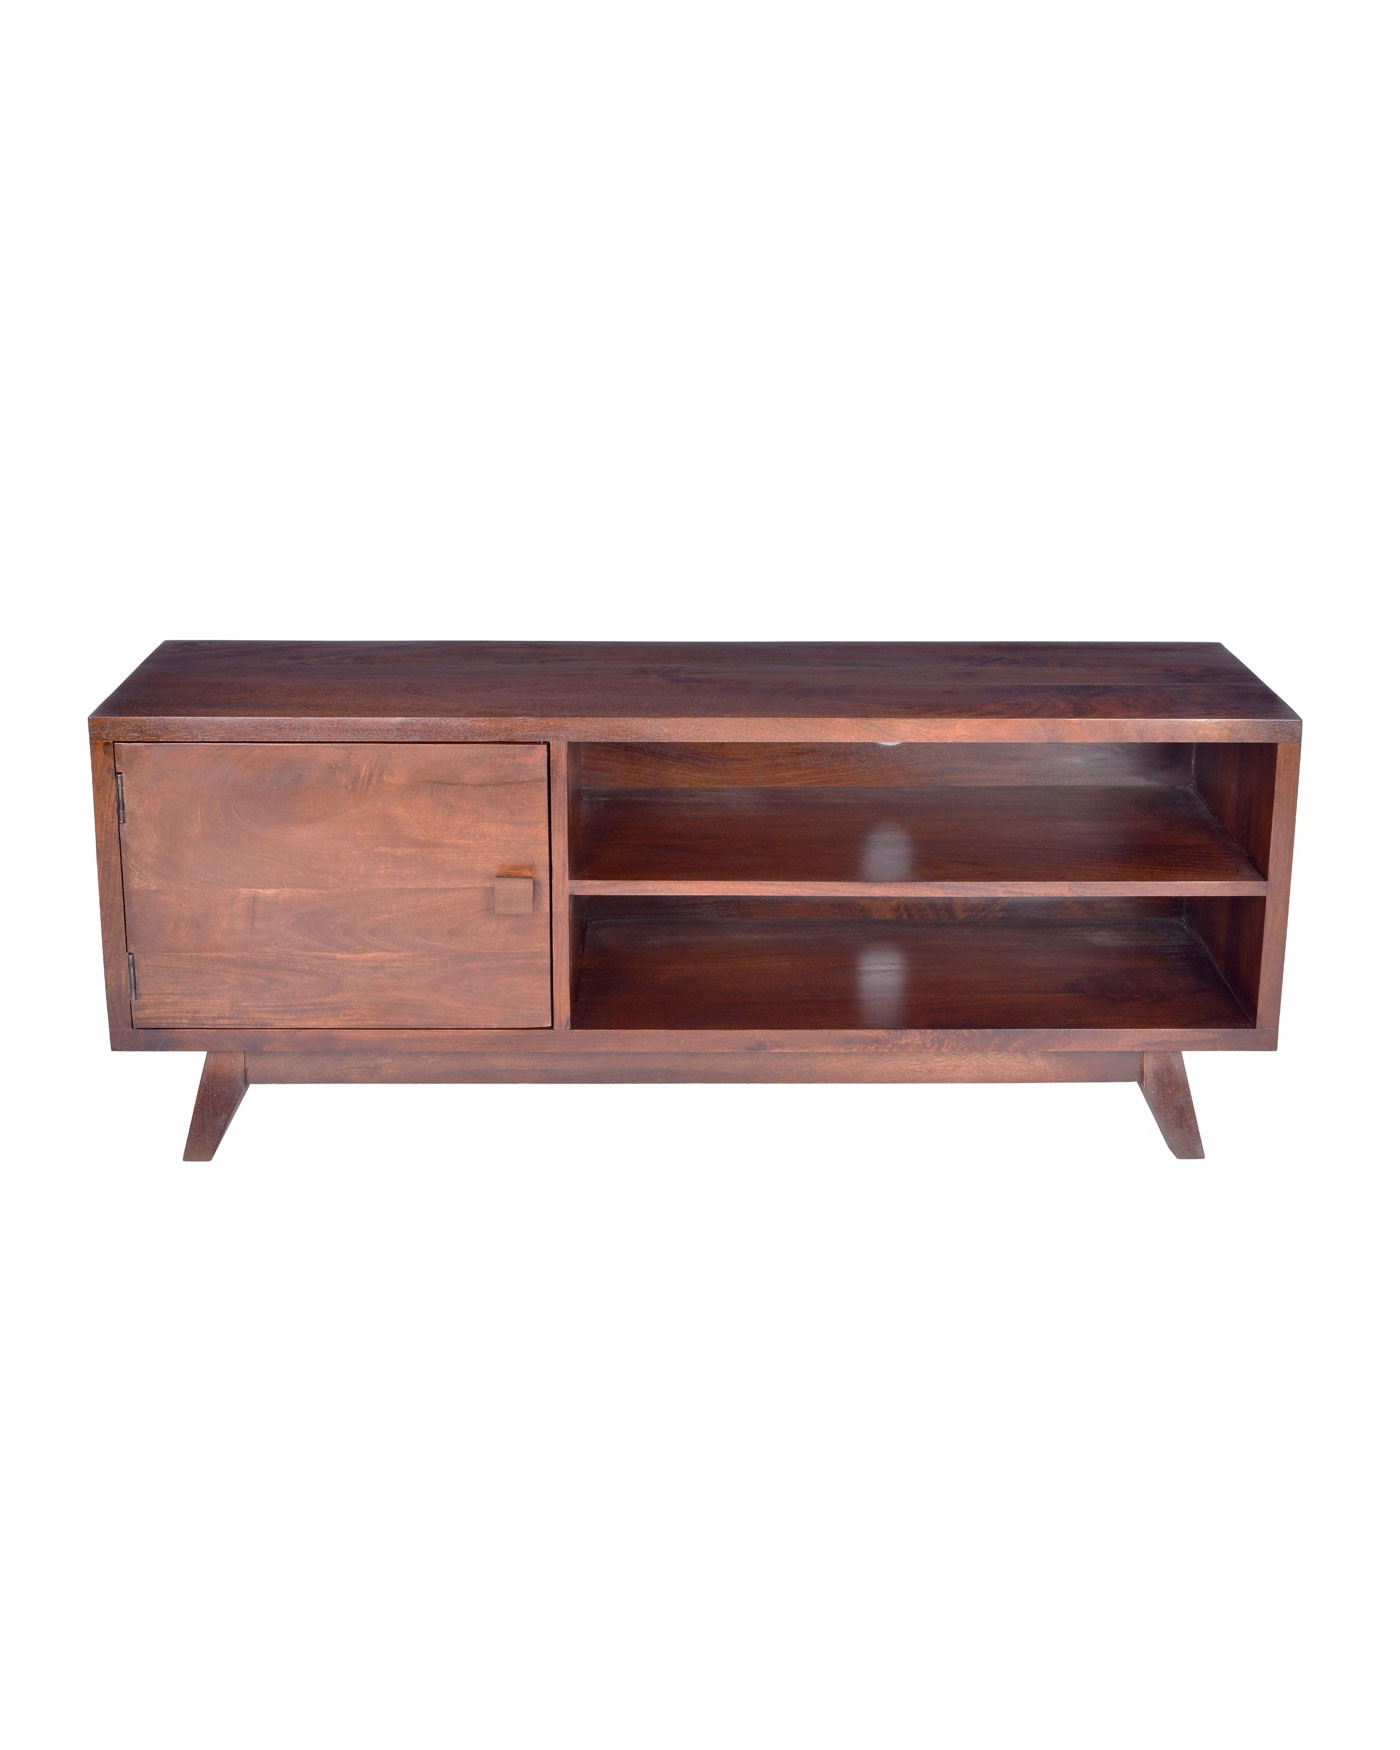 Dark Tv Stands Wood Stand With Shelf Retro Design 100 Solid Oak Intended For Newest Dark Tv Stands (View 9 of 20)